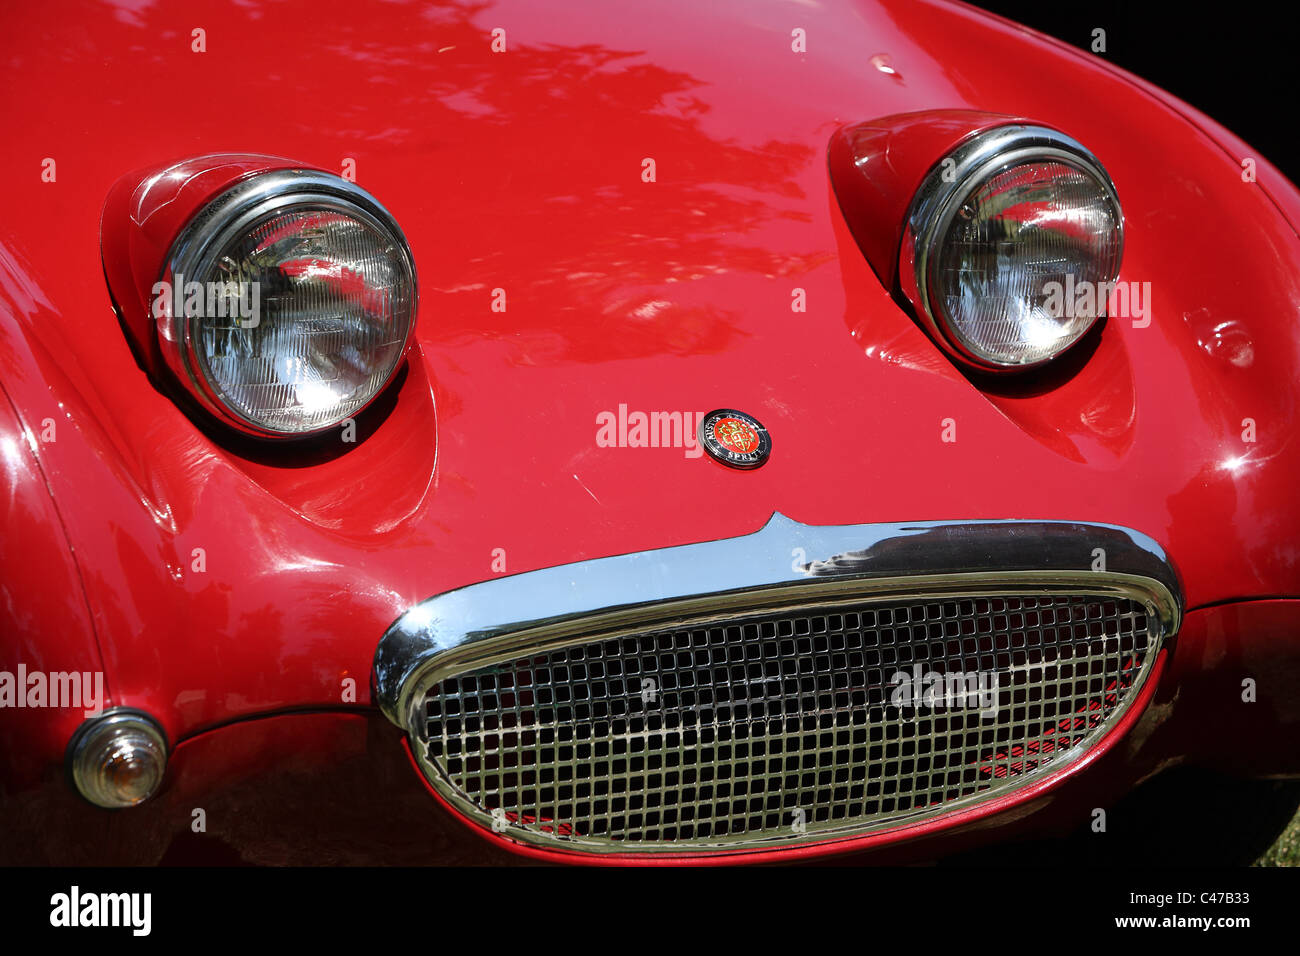 Bright red Austin Healey Sprite - Stock Image